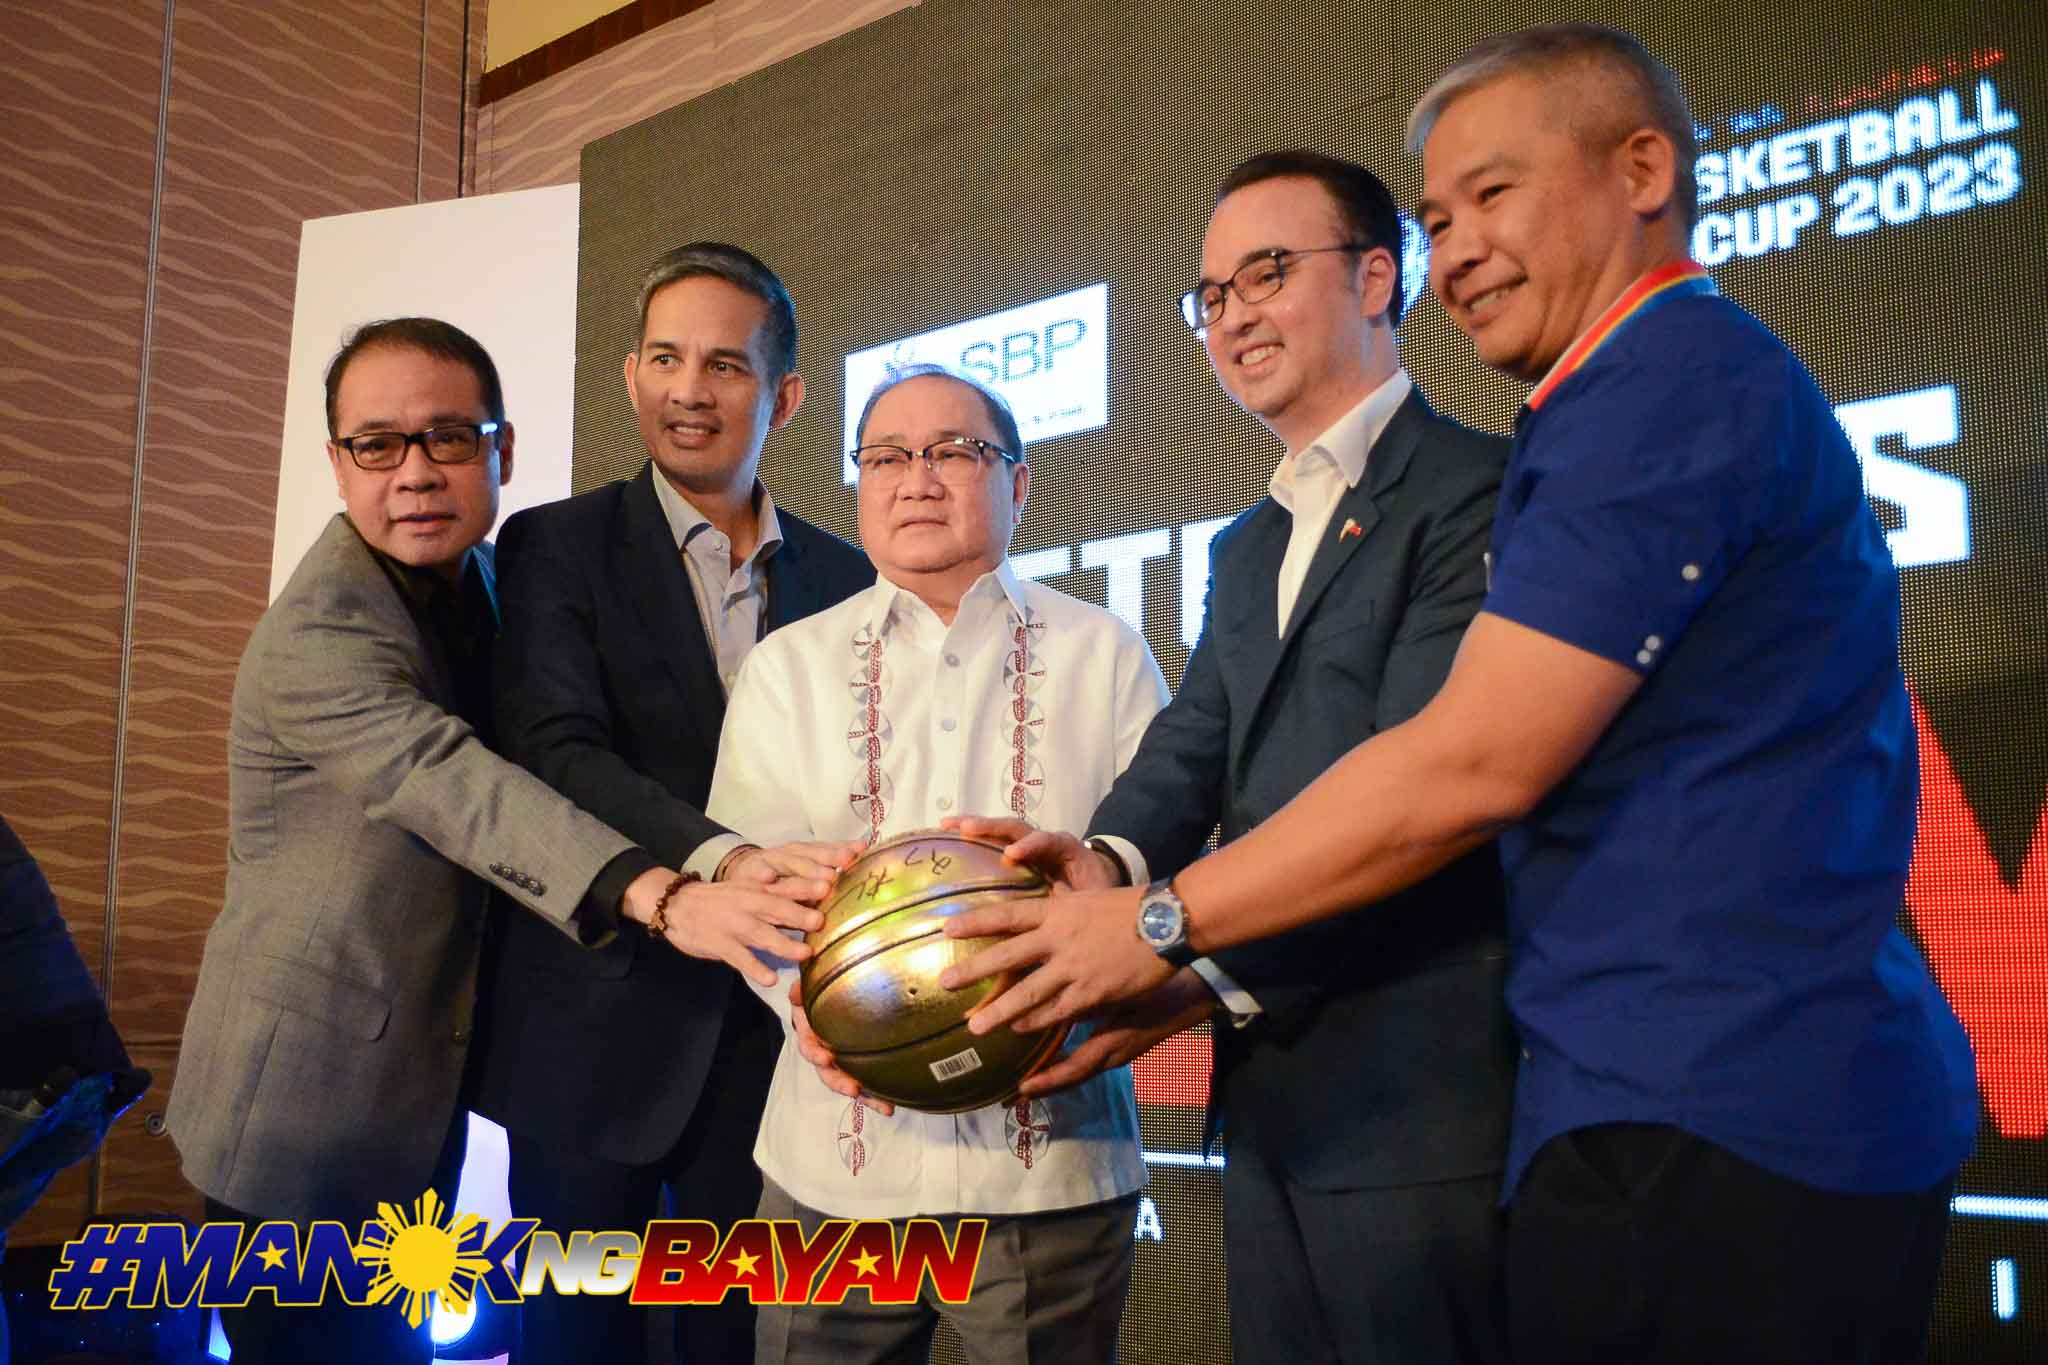 Philippine Sports News - Tiebreaker Times Alan Cayetano, Robbie Puno hope club teams set aside personal interests Basketball Gilas Pilipinas News  Samahang Basketbol ng Pilipinas Robbie Puno Peter Cayetano 2023 FIBA World Cup